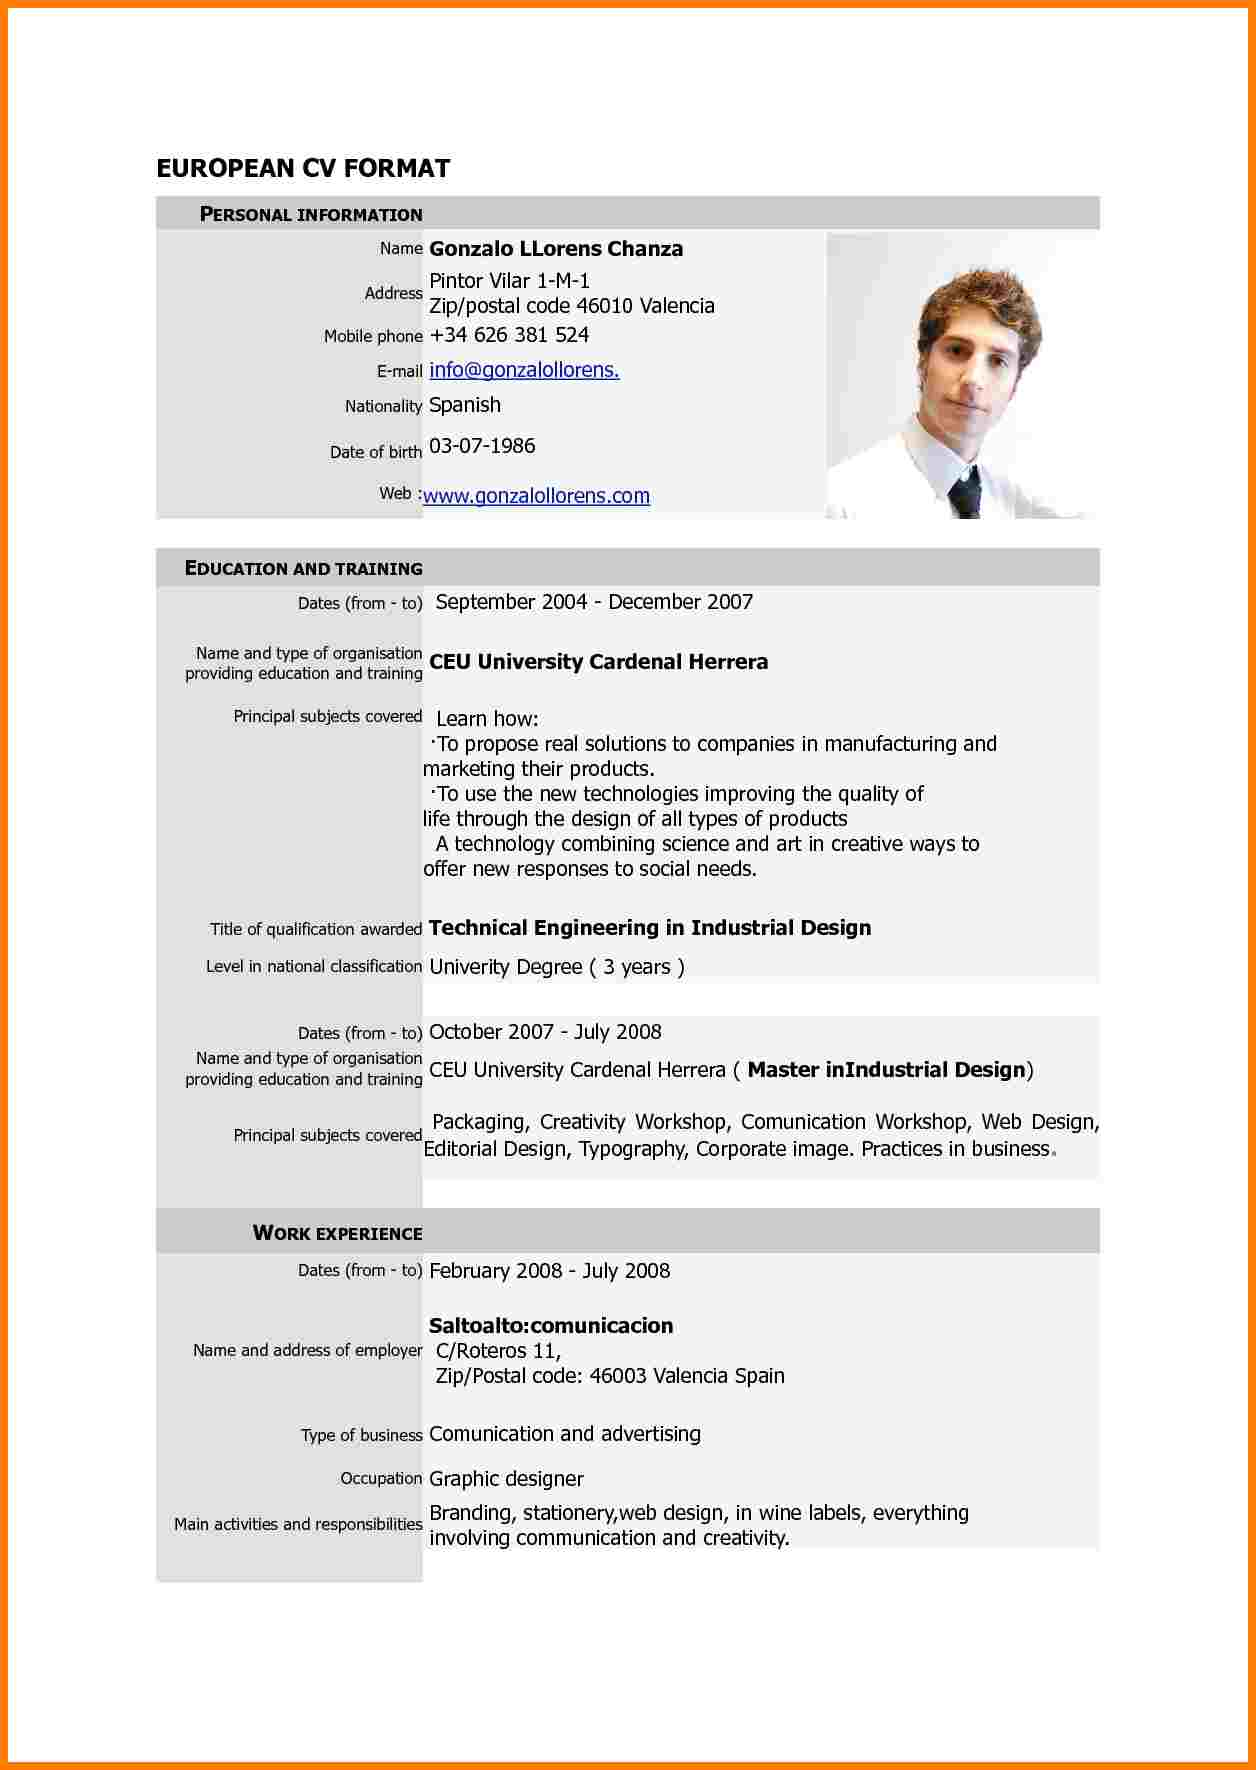 Latest cv format new resume 8 9 practicable so – articlesinsider.info